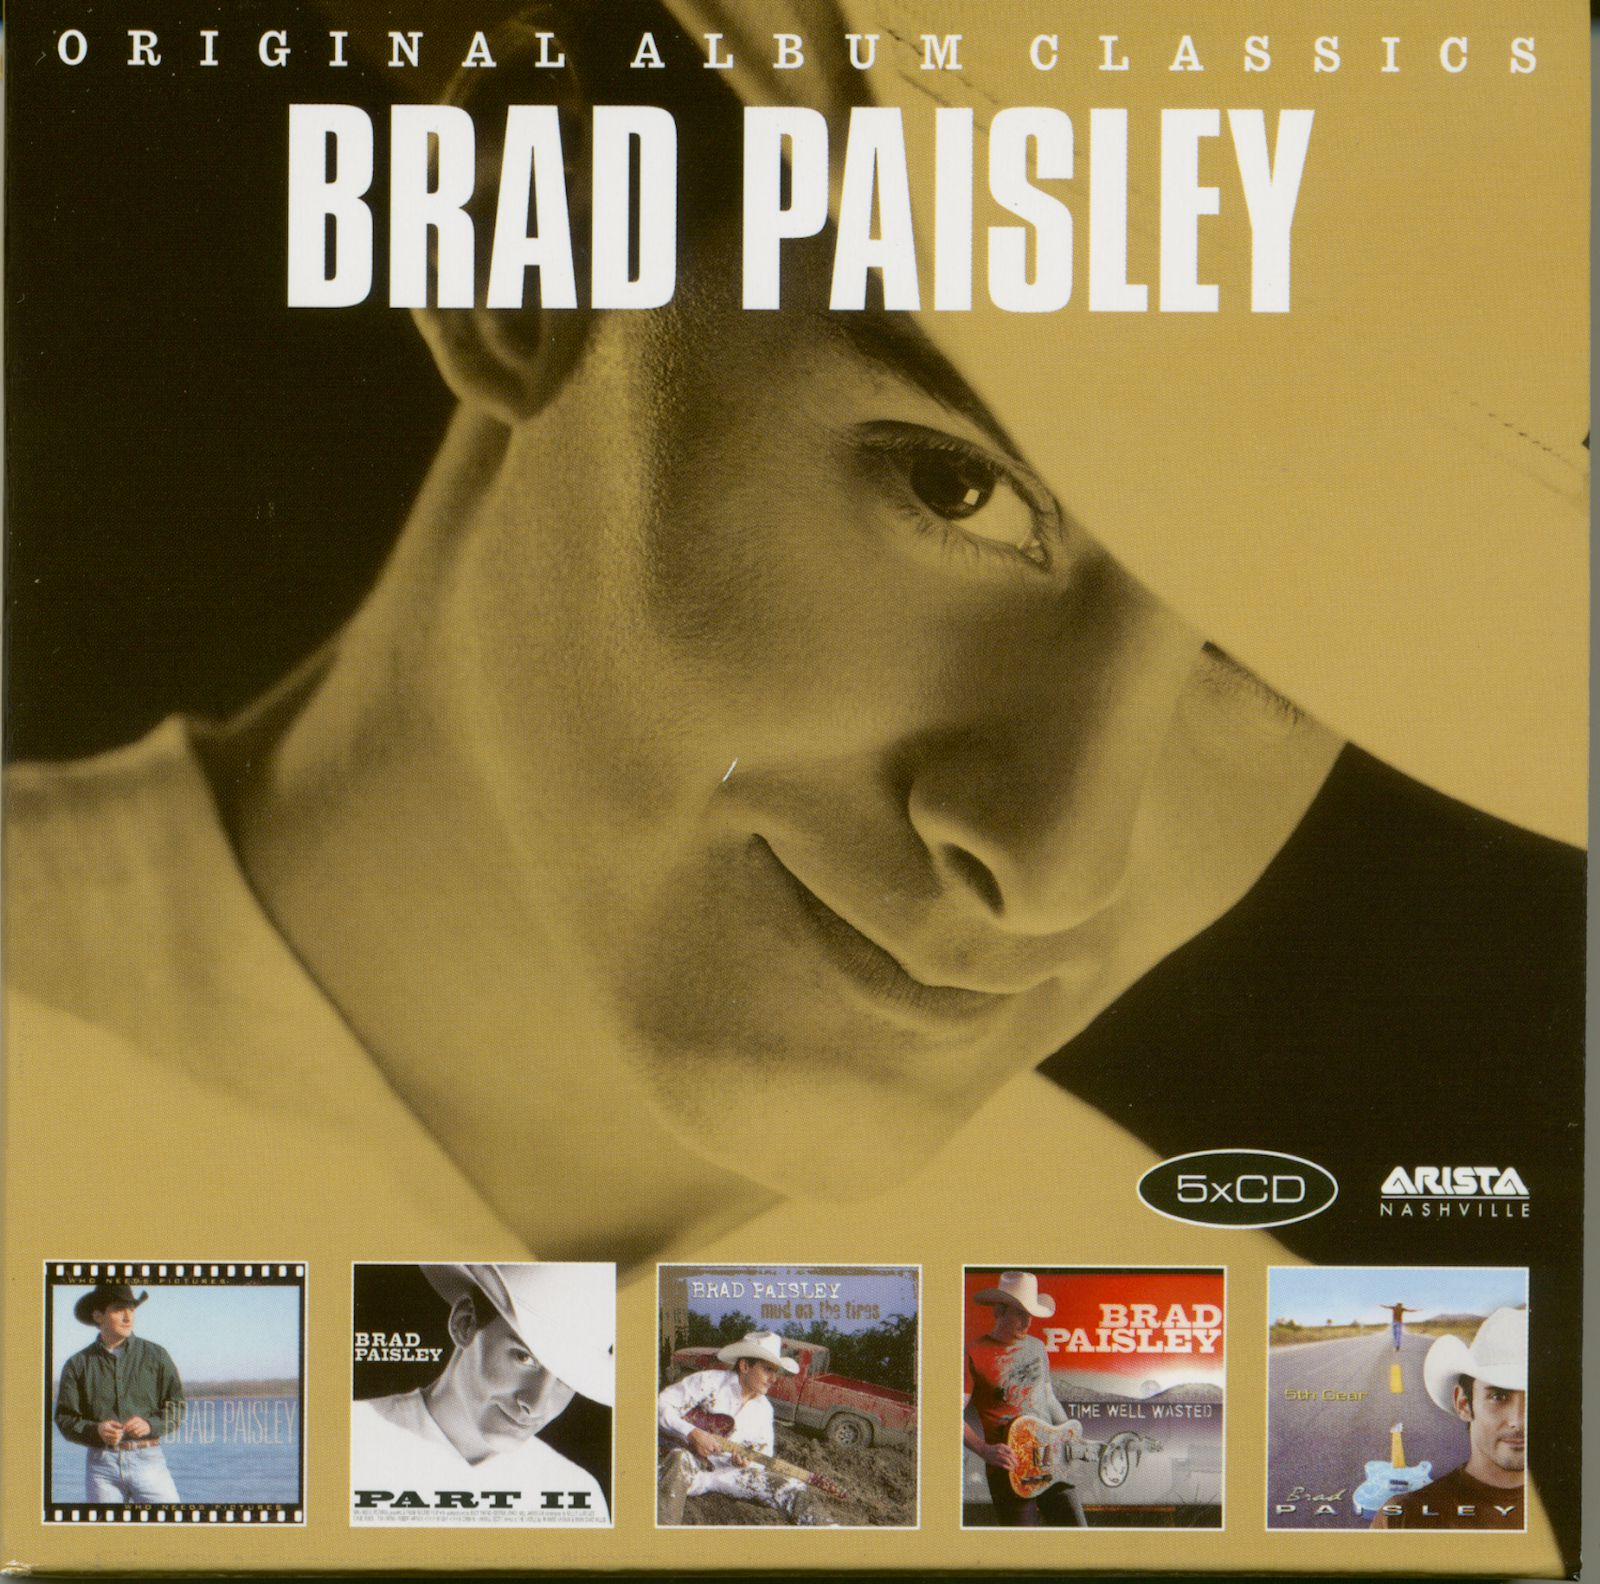 Brad Paisley CD: Original Album Clics (5-CD) - Bear Family Records on the cable box, the dark box, the nut box, the gravity box, the power box, the gamble box, the resistance box, the element box, the light box, the red box, the golden box, the screw box, the breaker box, the pump box, the gear box, the doom box, the style box, the valve box, the toy box, the fuel box,